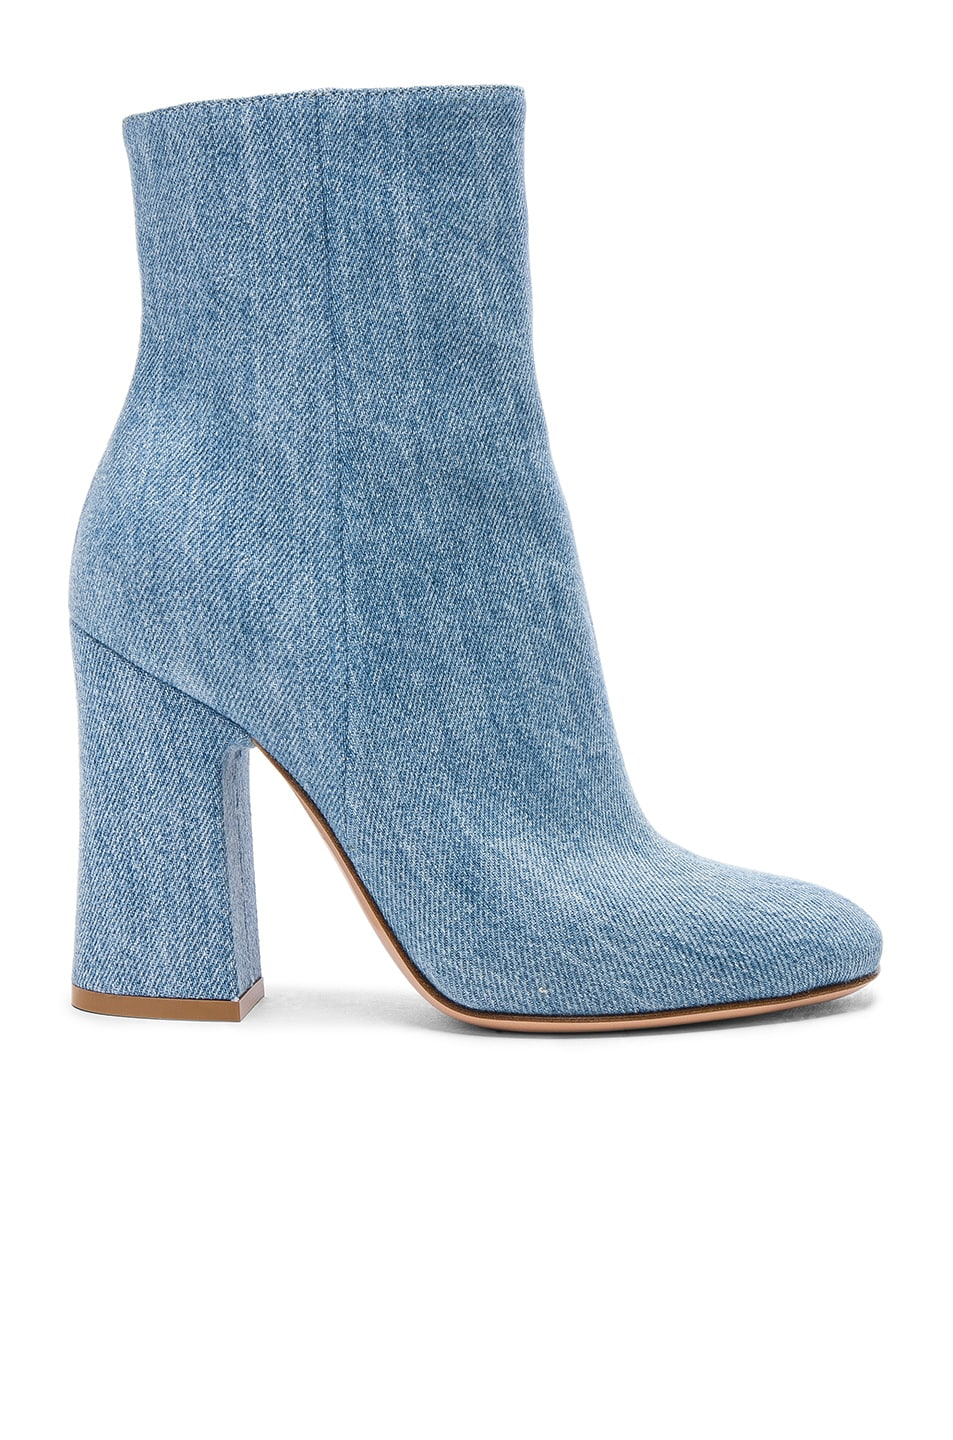 Image 1 of Gianvito Rossi Denim Shelly Booties in Stonewash